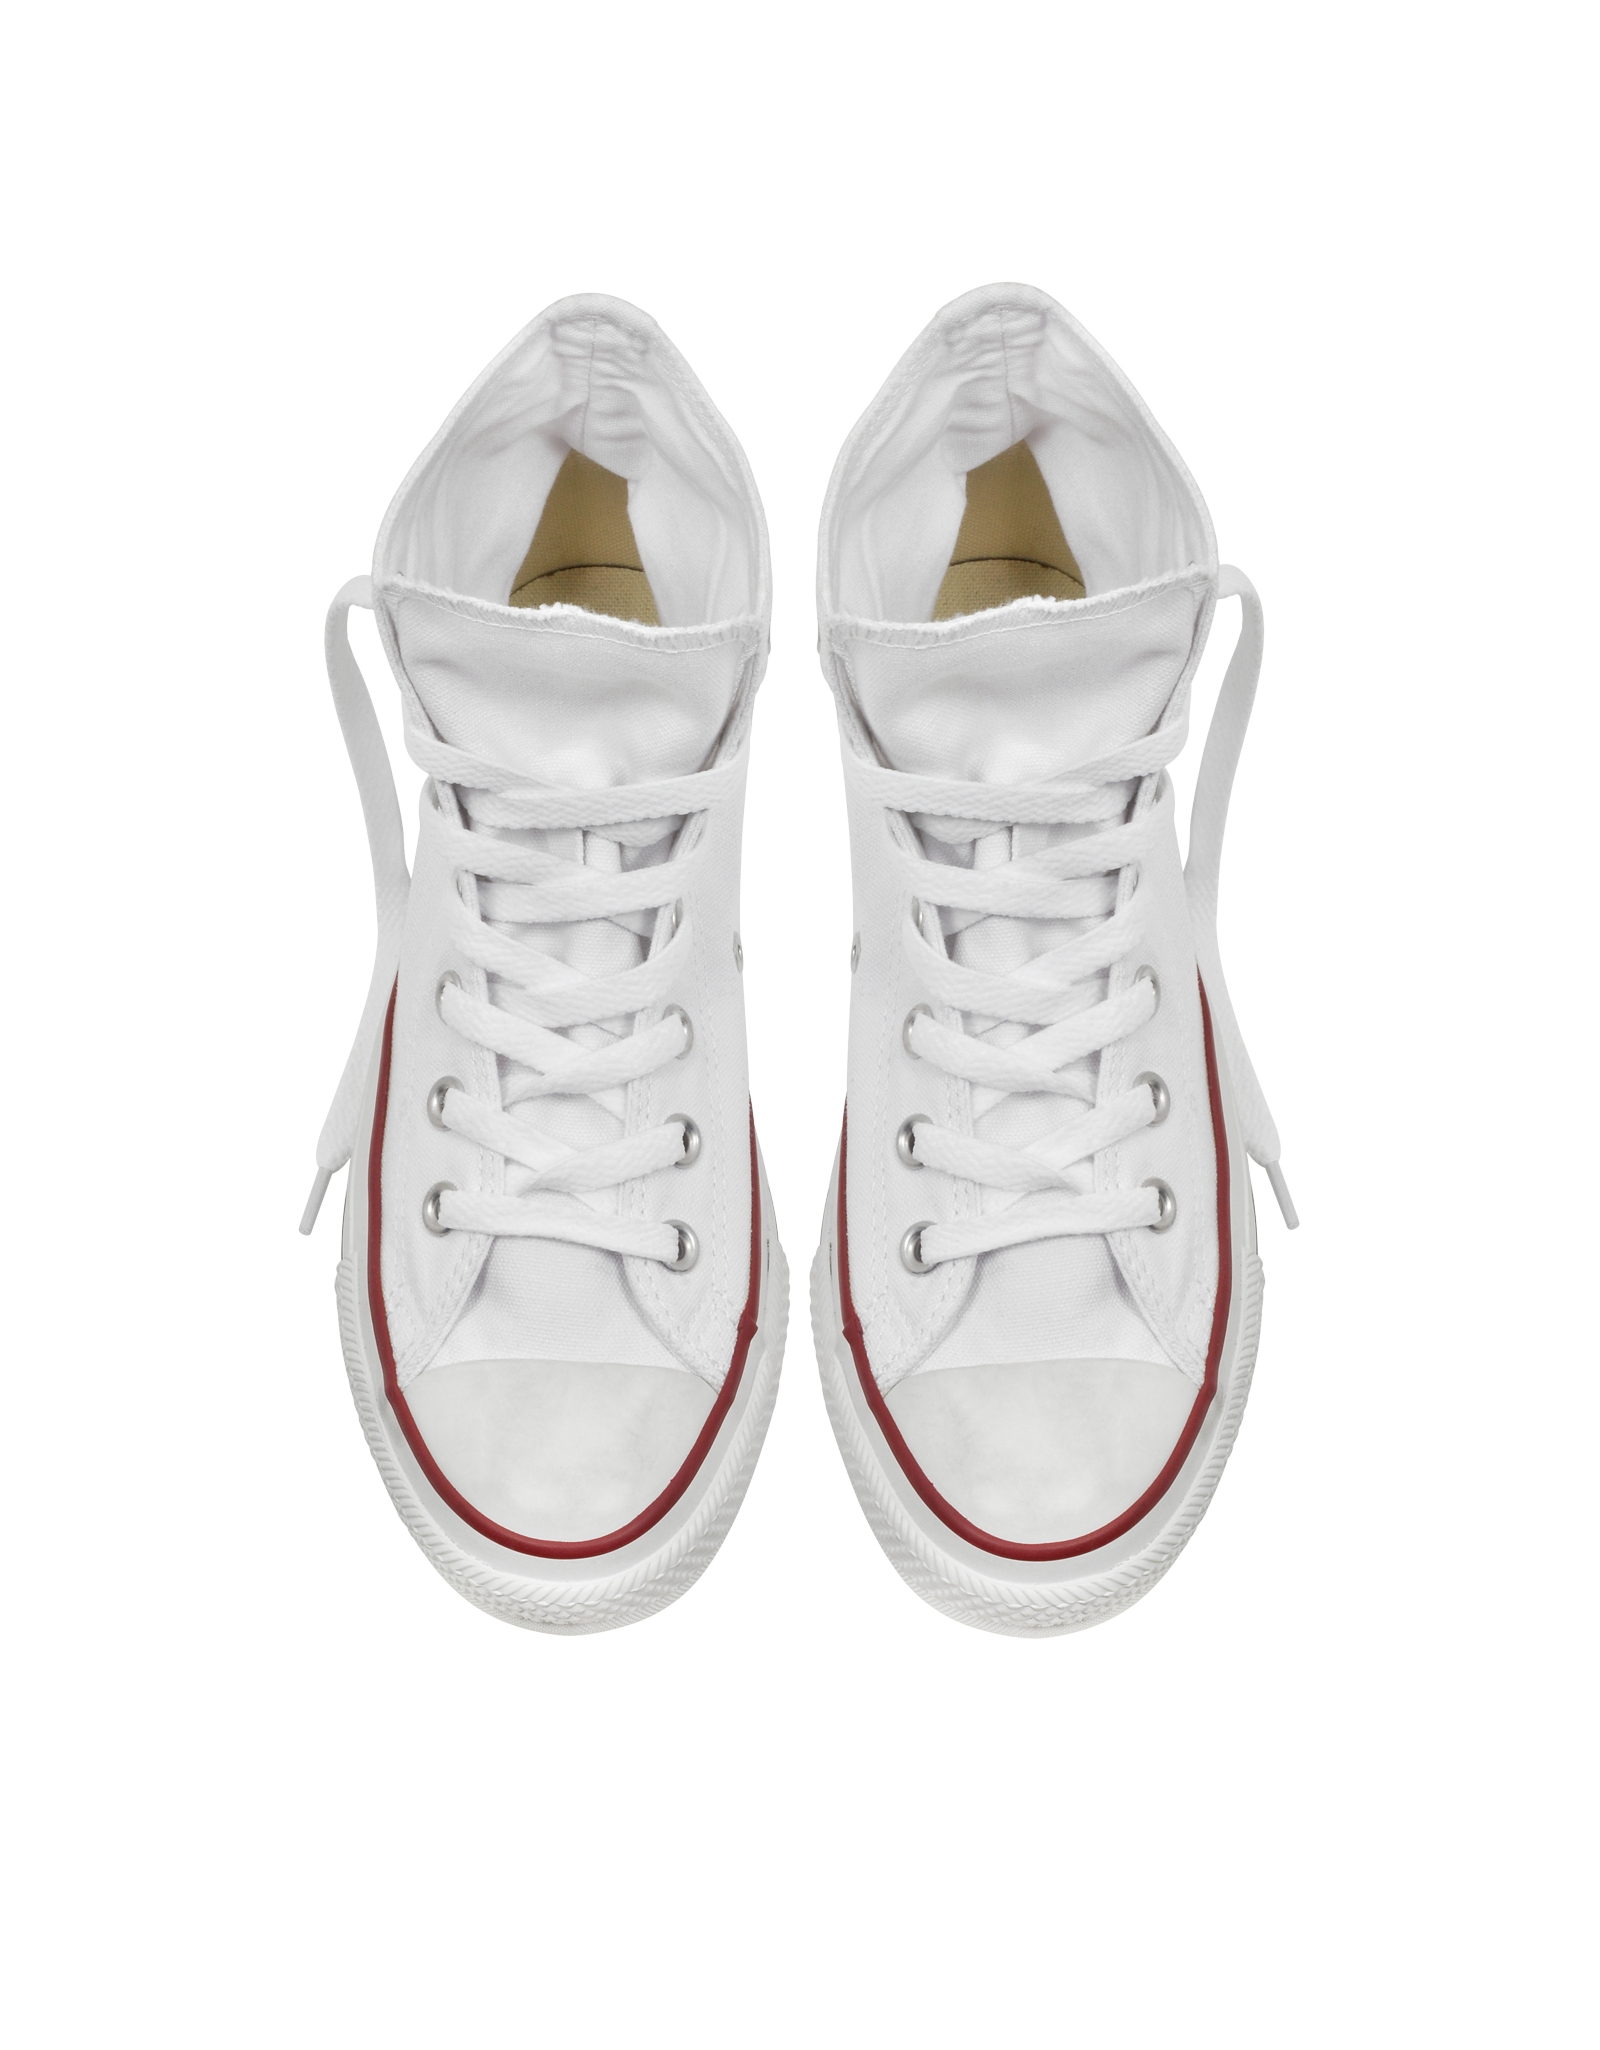 converse all optic white canvas high top sneaker in